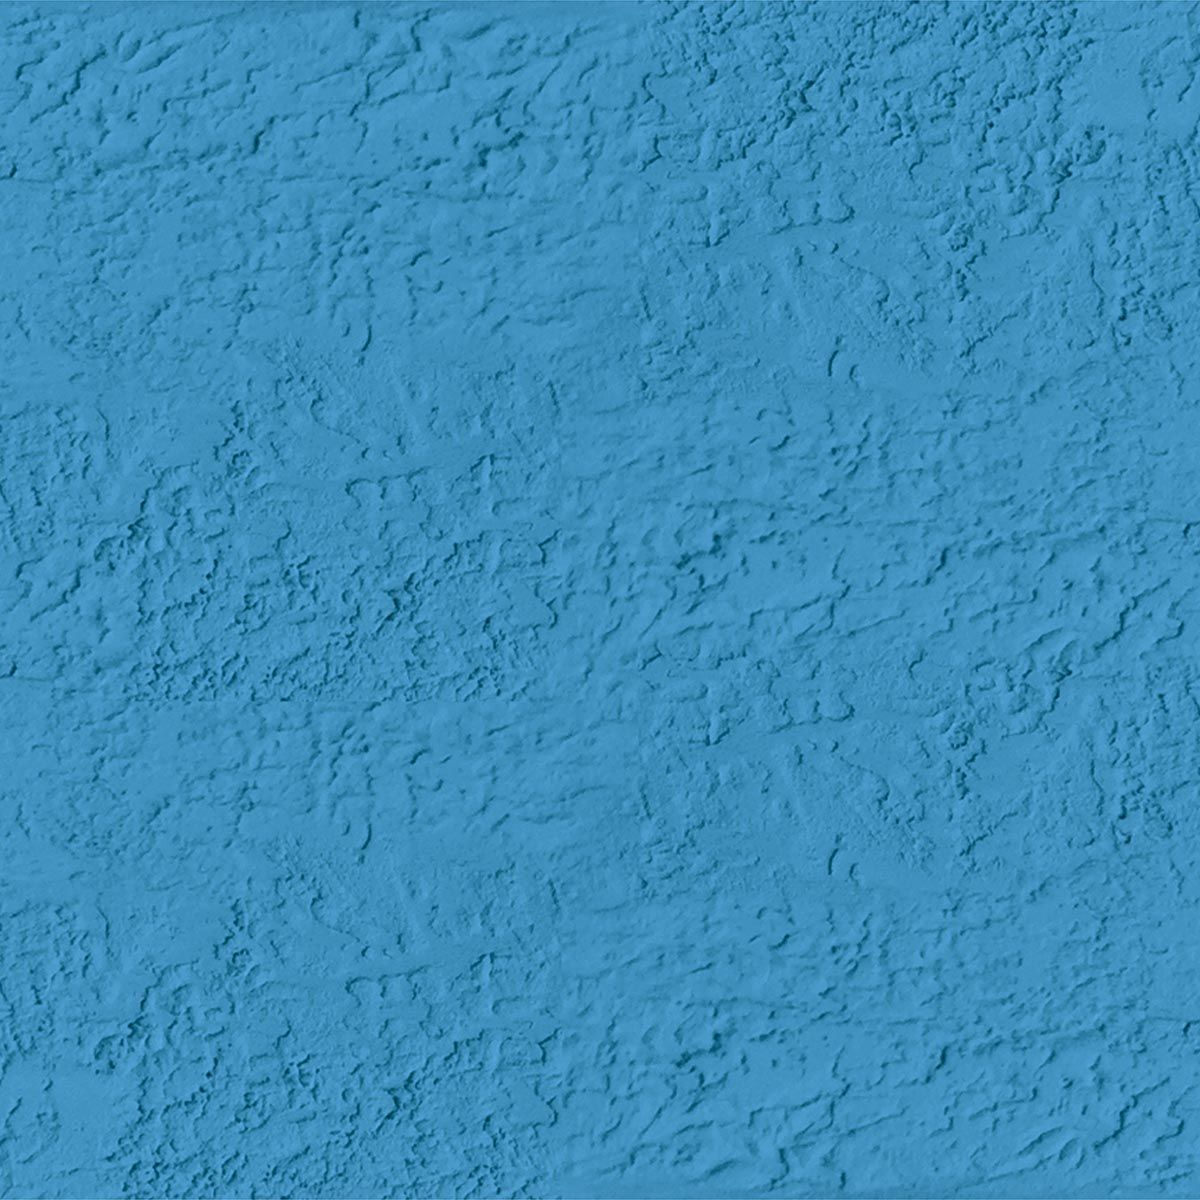 FolkArt ® Coastal™ Texture Paint - Largo Blue, 8 oz.